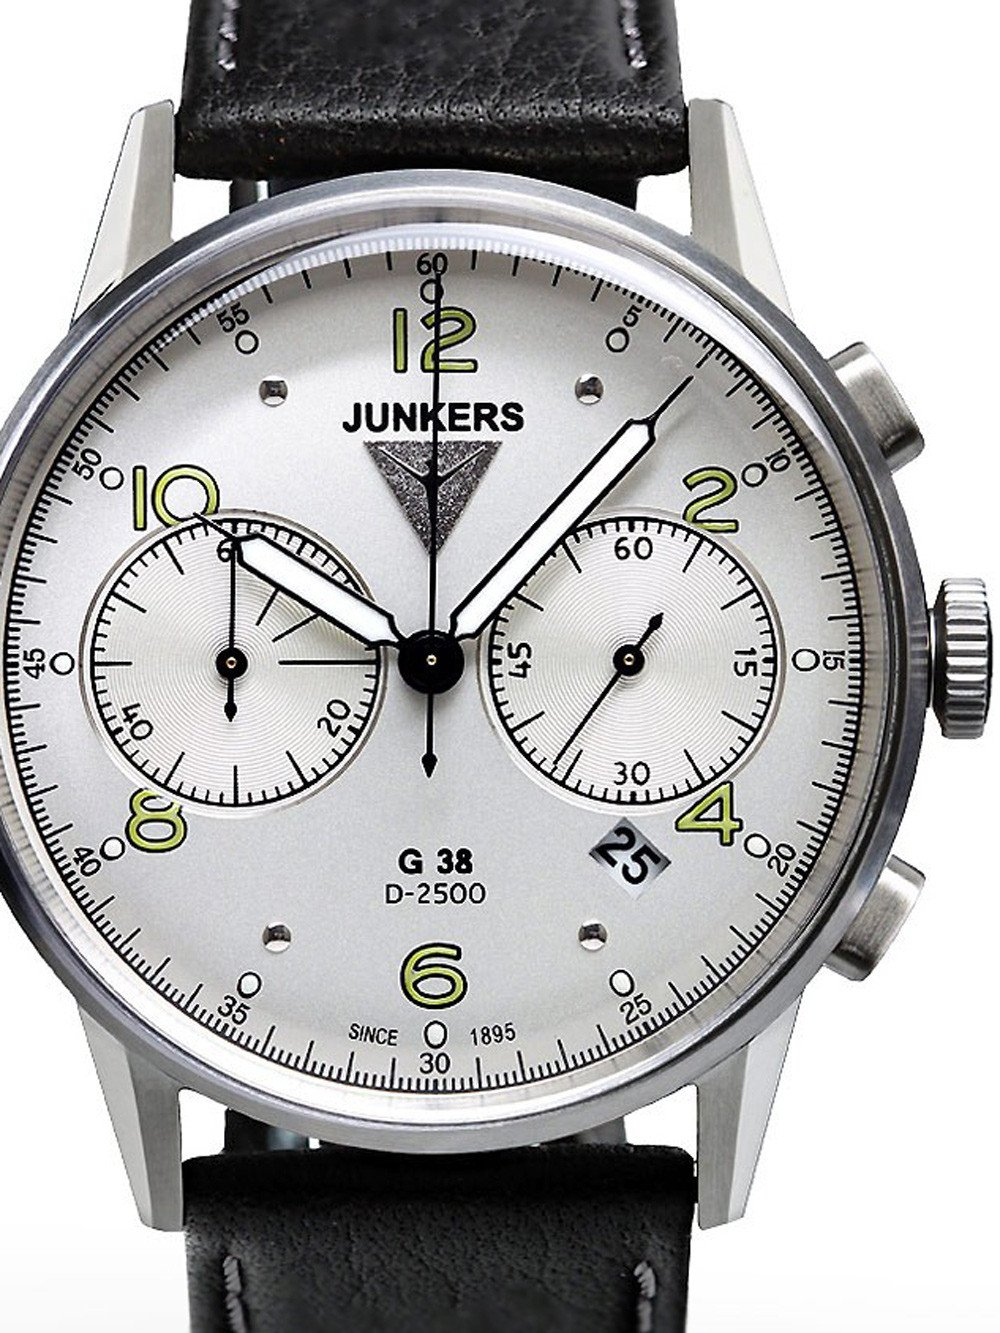 Junkers 6984-4 G38 Chronograph Men's 10 ATM 42 mm